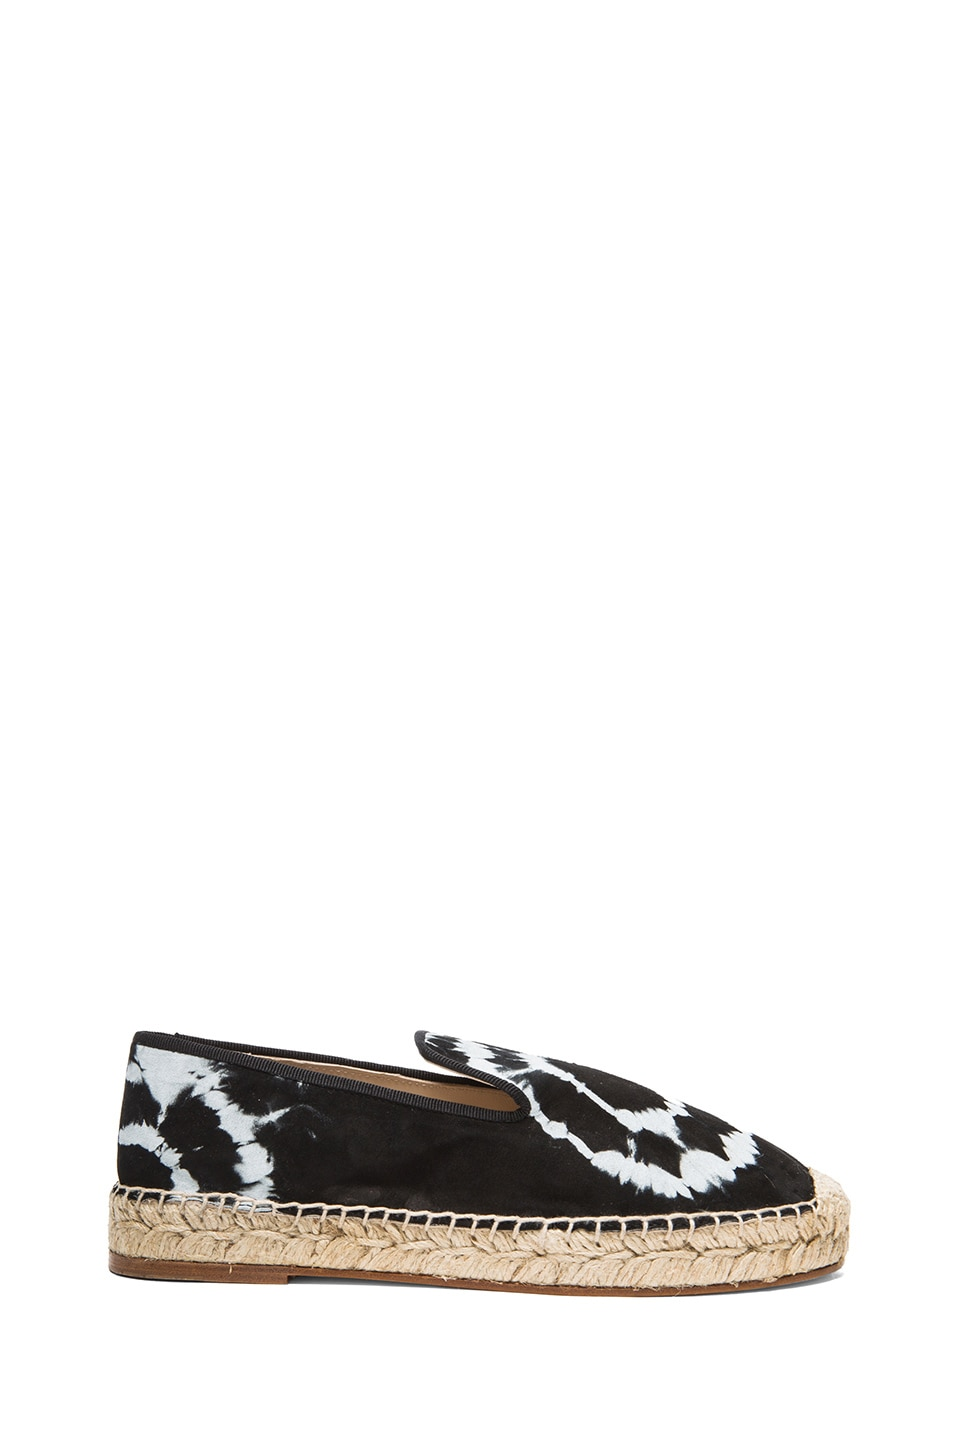 Image 1 of elysewalker los angeles Tie Dye Satik Suede Espadrilles in Black & White